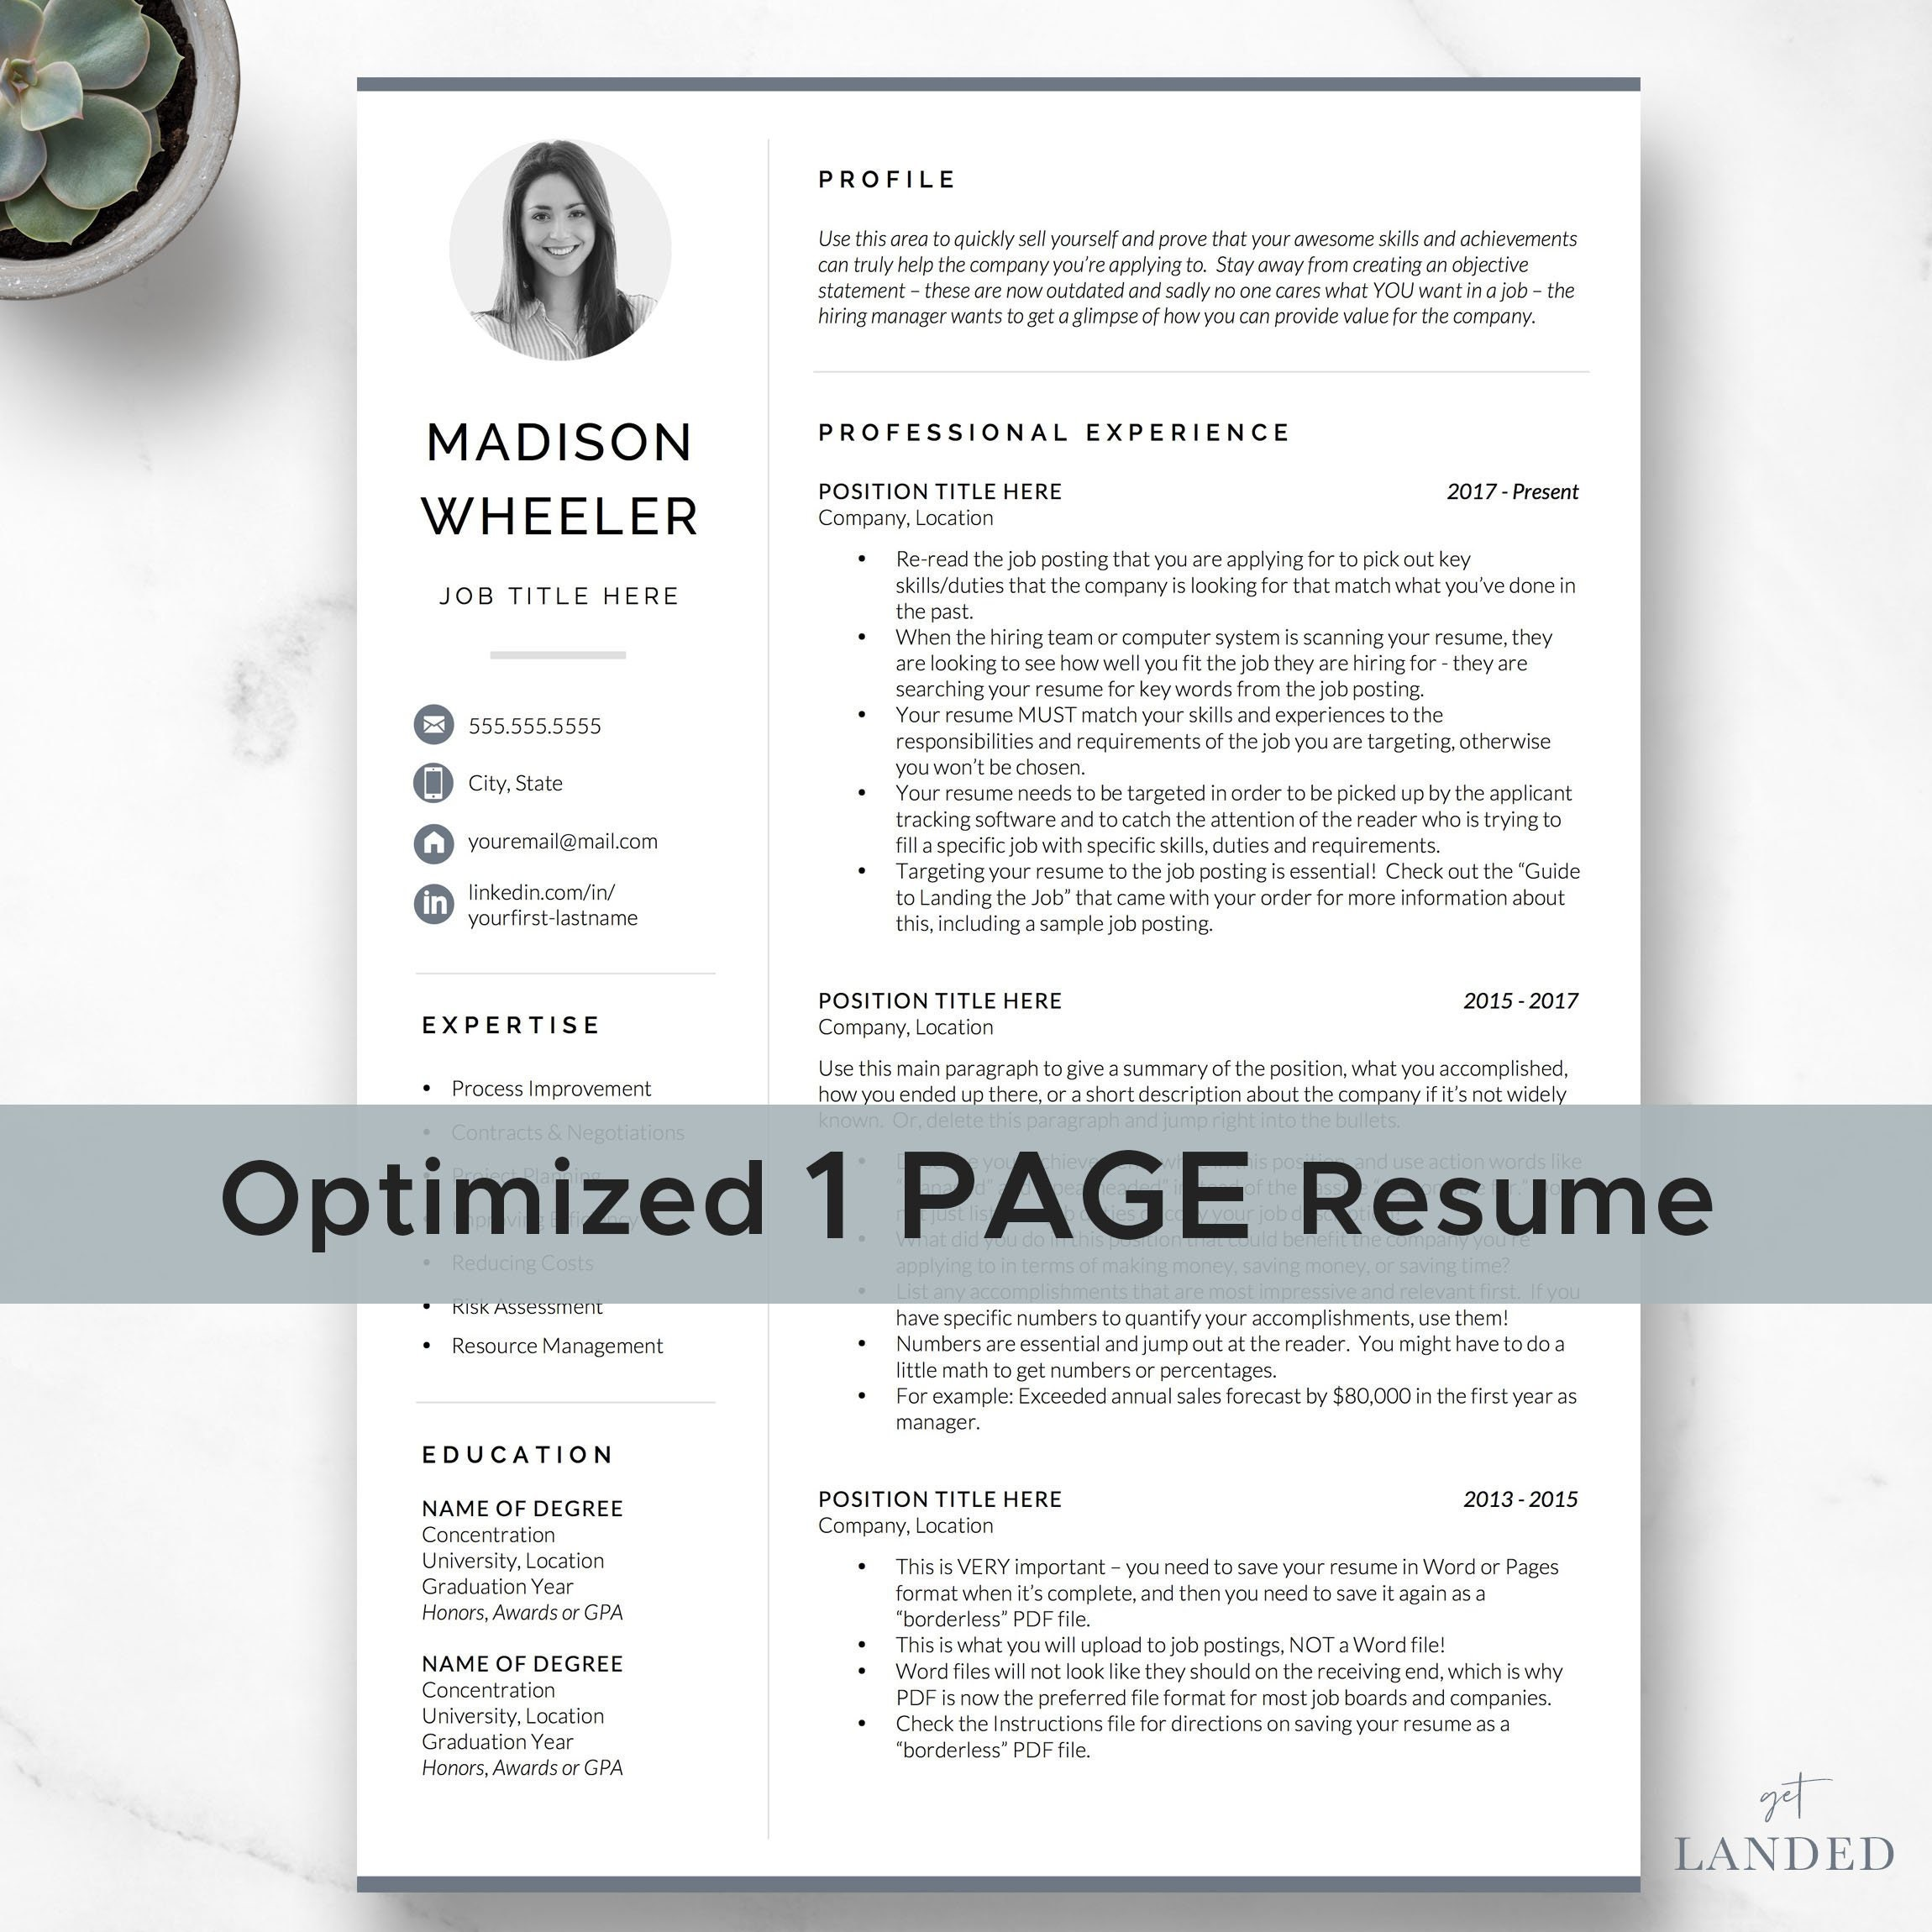 2 page resume template word